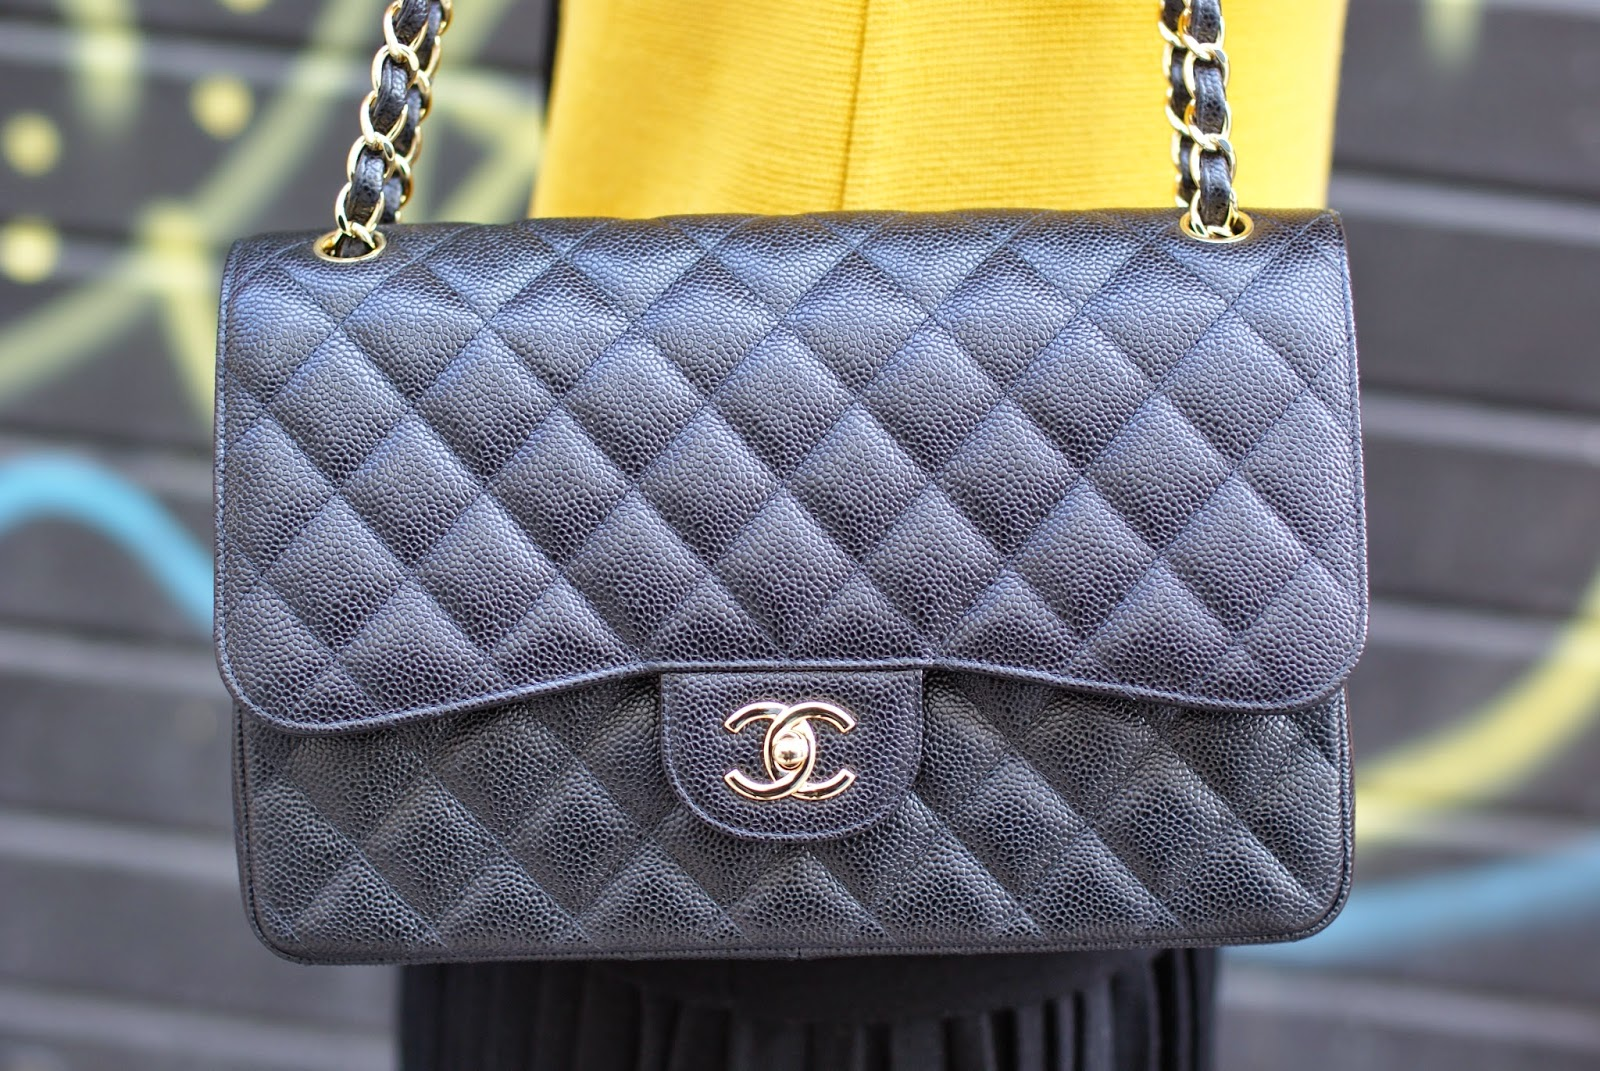 borsa chanel 2.55 pelle martellata, Chanel 2.55 classic flap, Fashion and Cookies fashion blog, fashion blogger